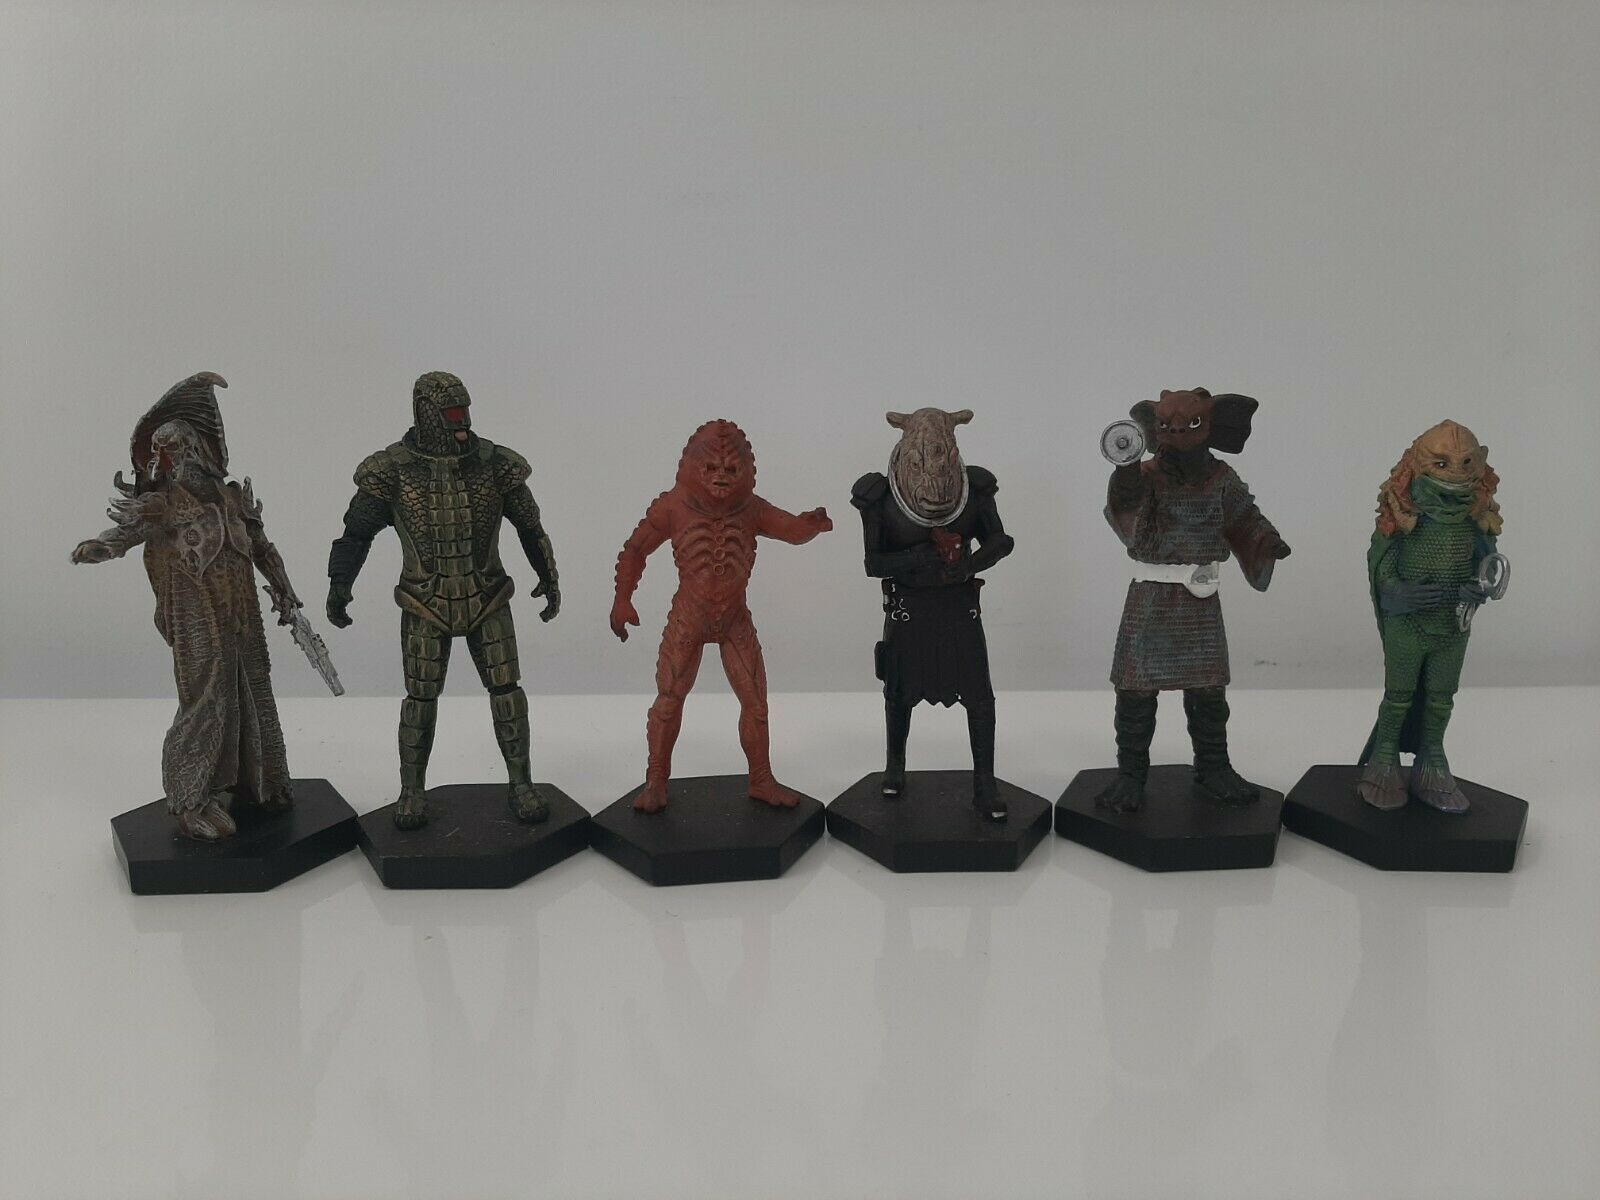 2012 Eaglemoss Dr Who Figurine Collection Lot of 6 Figures